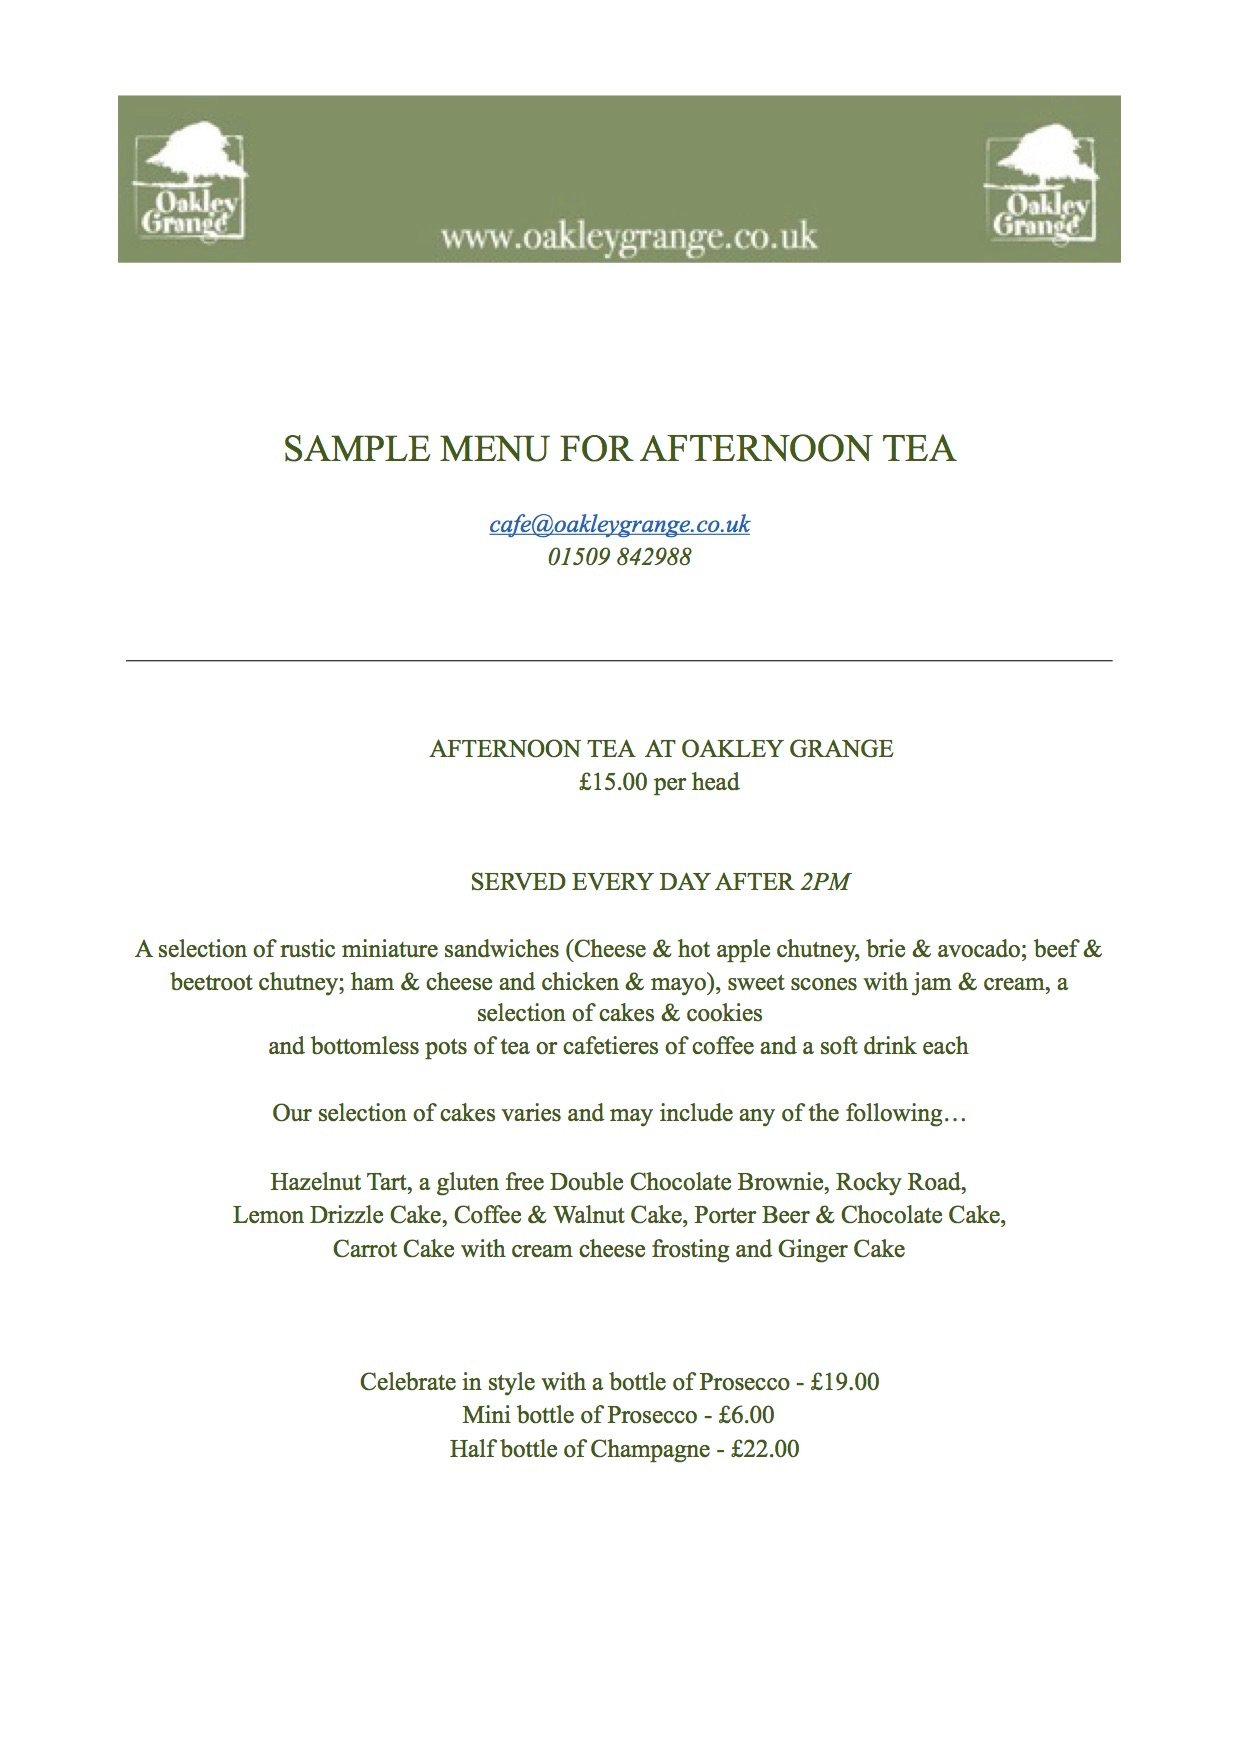 Sample Menu for Afternoon Tea at Oakley Grange